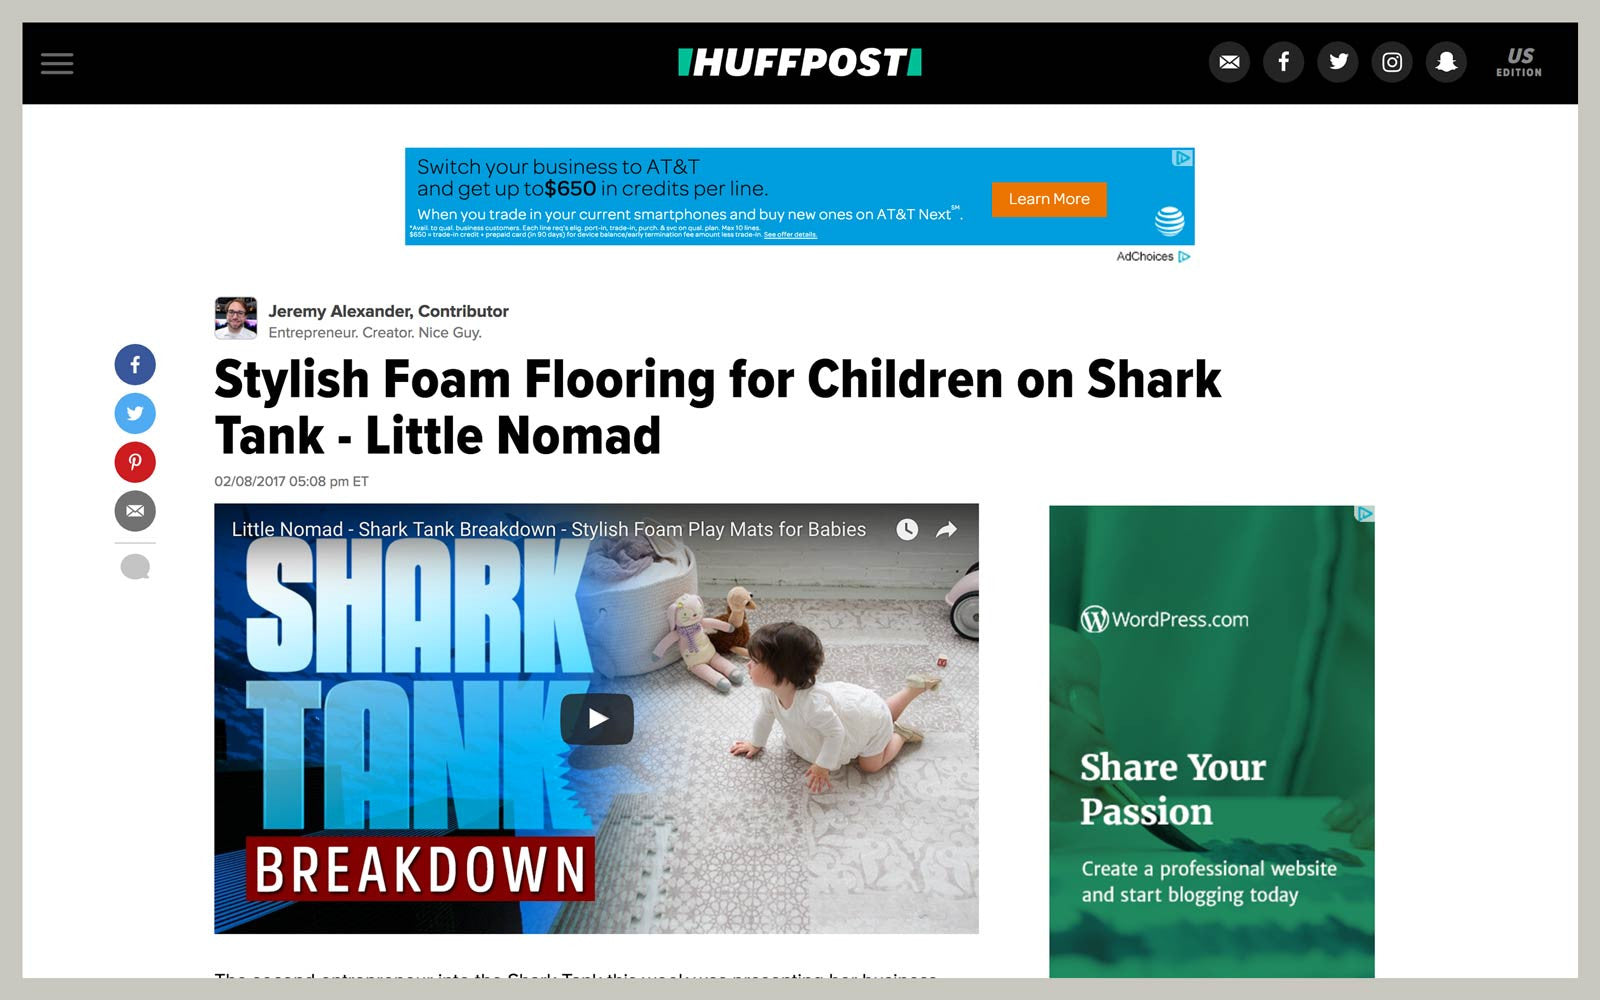 Little Nomad featured on Huffington Post